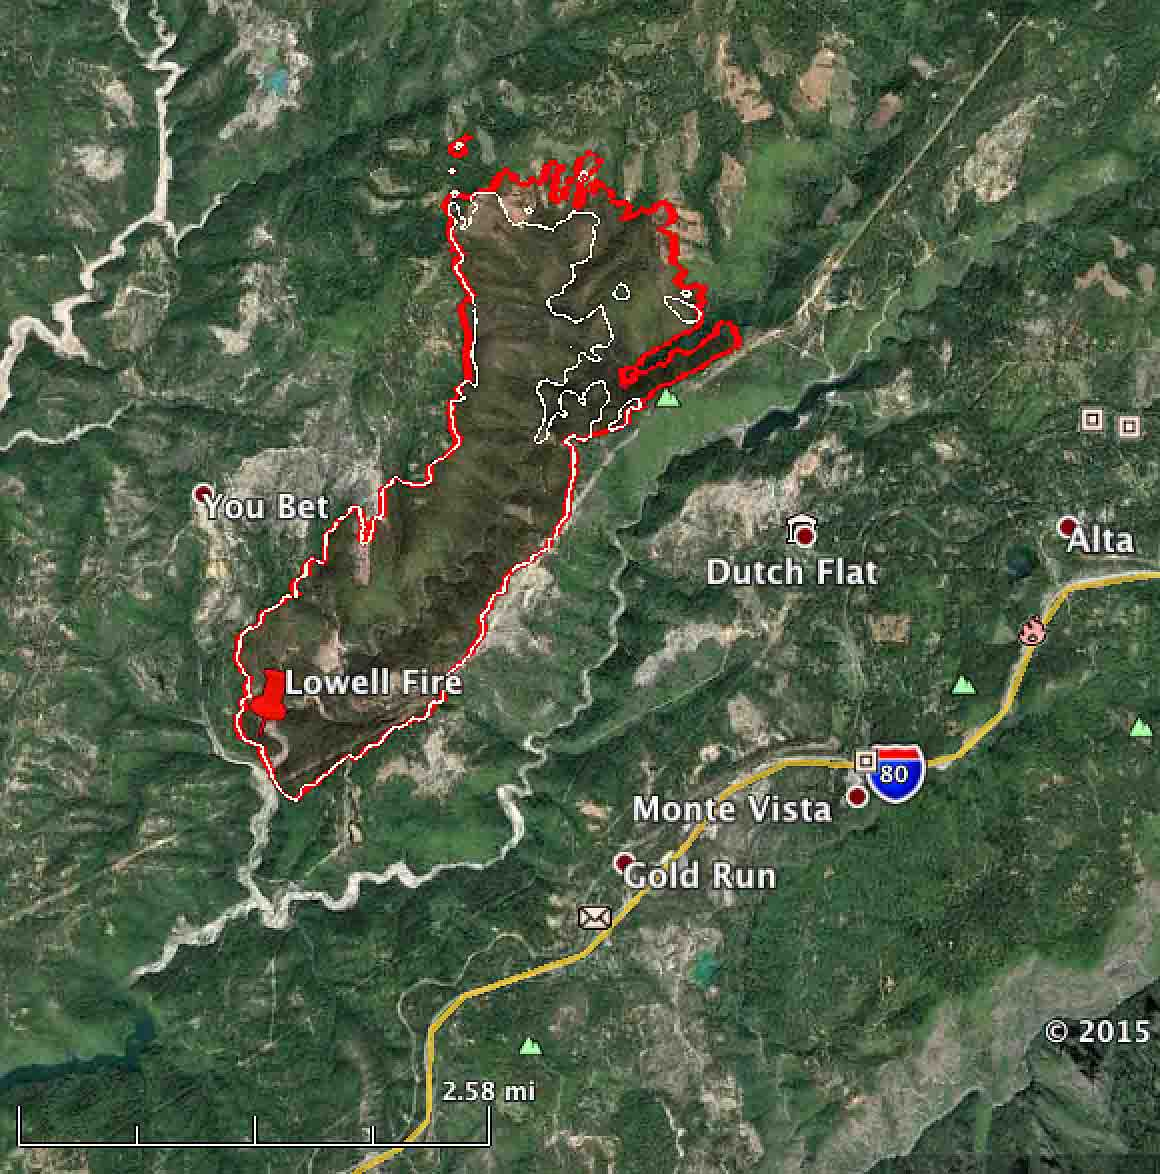 US Forest Service Active Fire Mapping Program Mapcruzin Free GIS - Us forest service fire map california